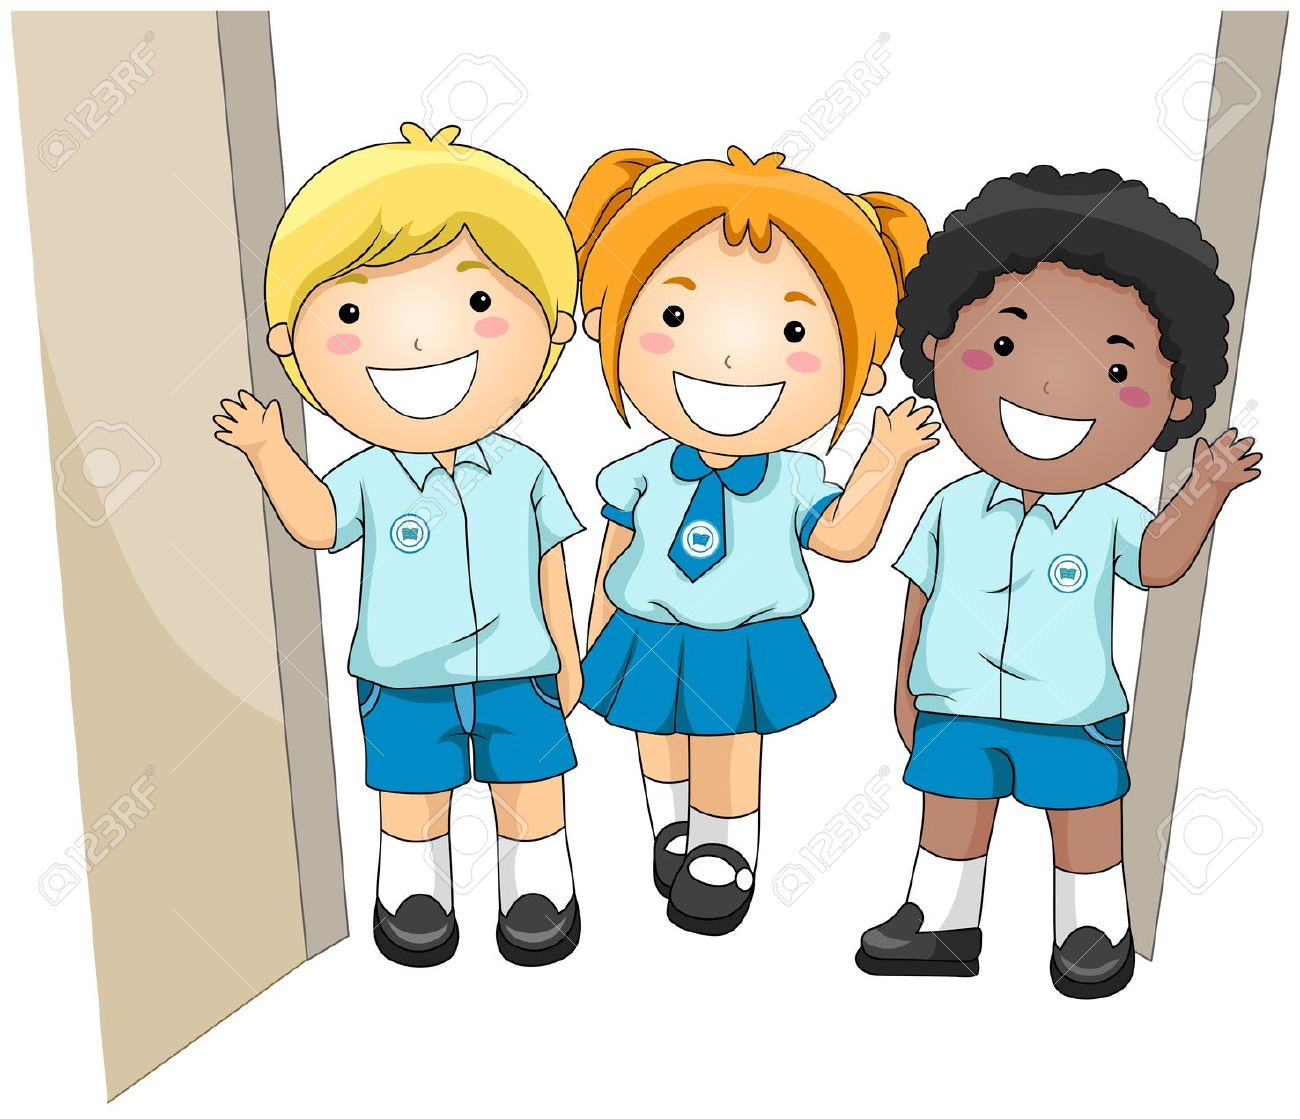 Clipart Of Pupils In School.